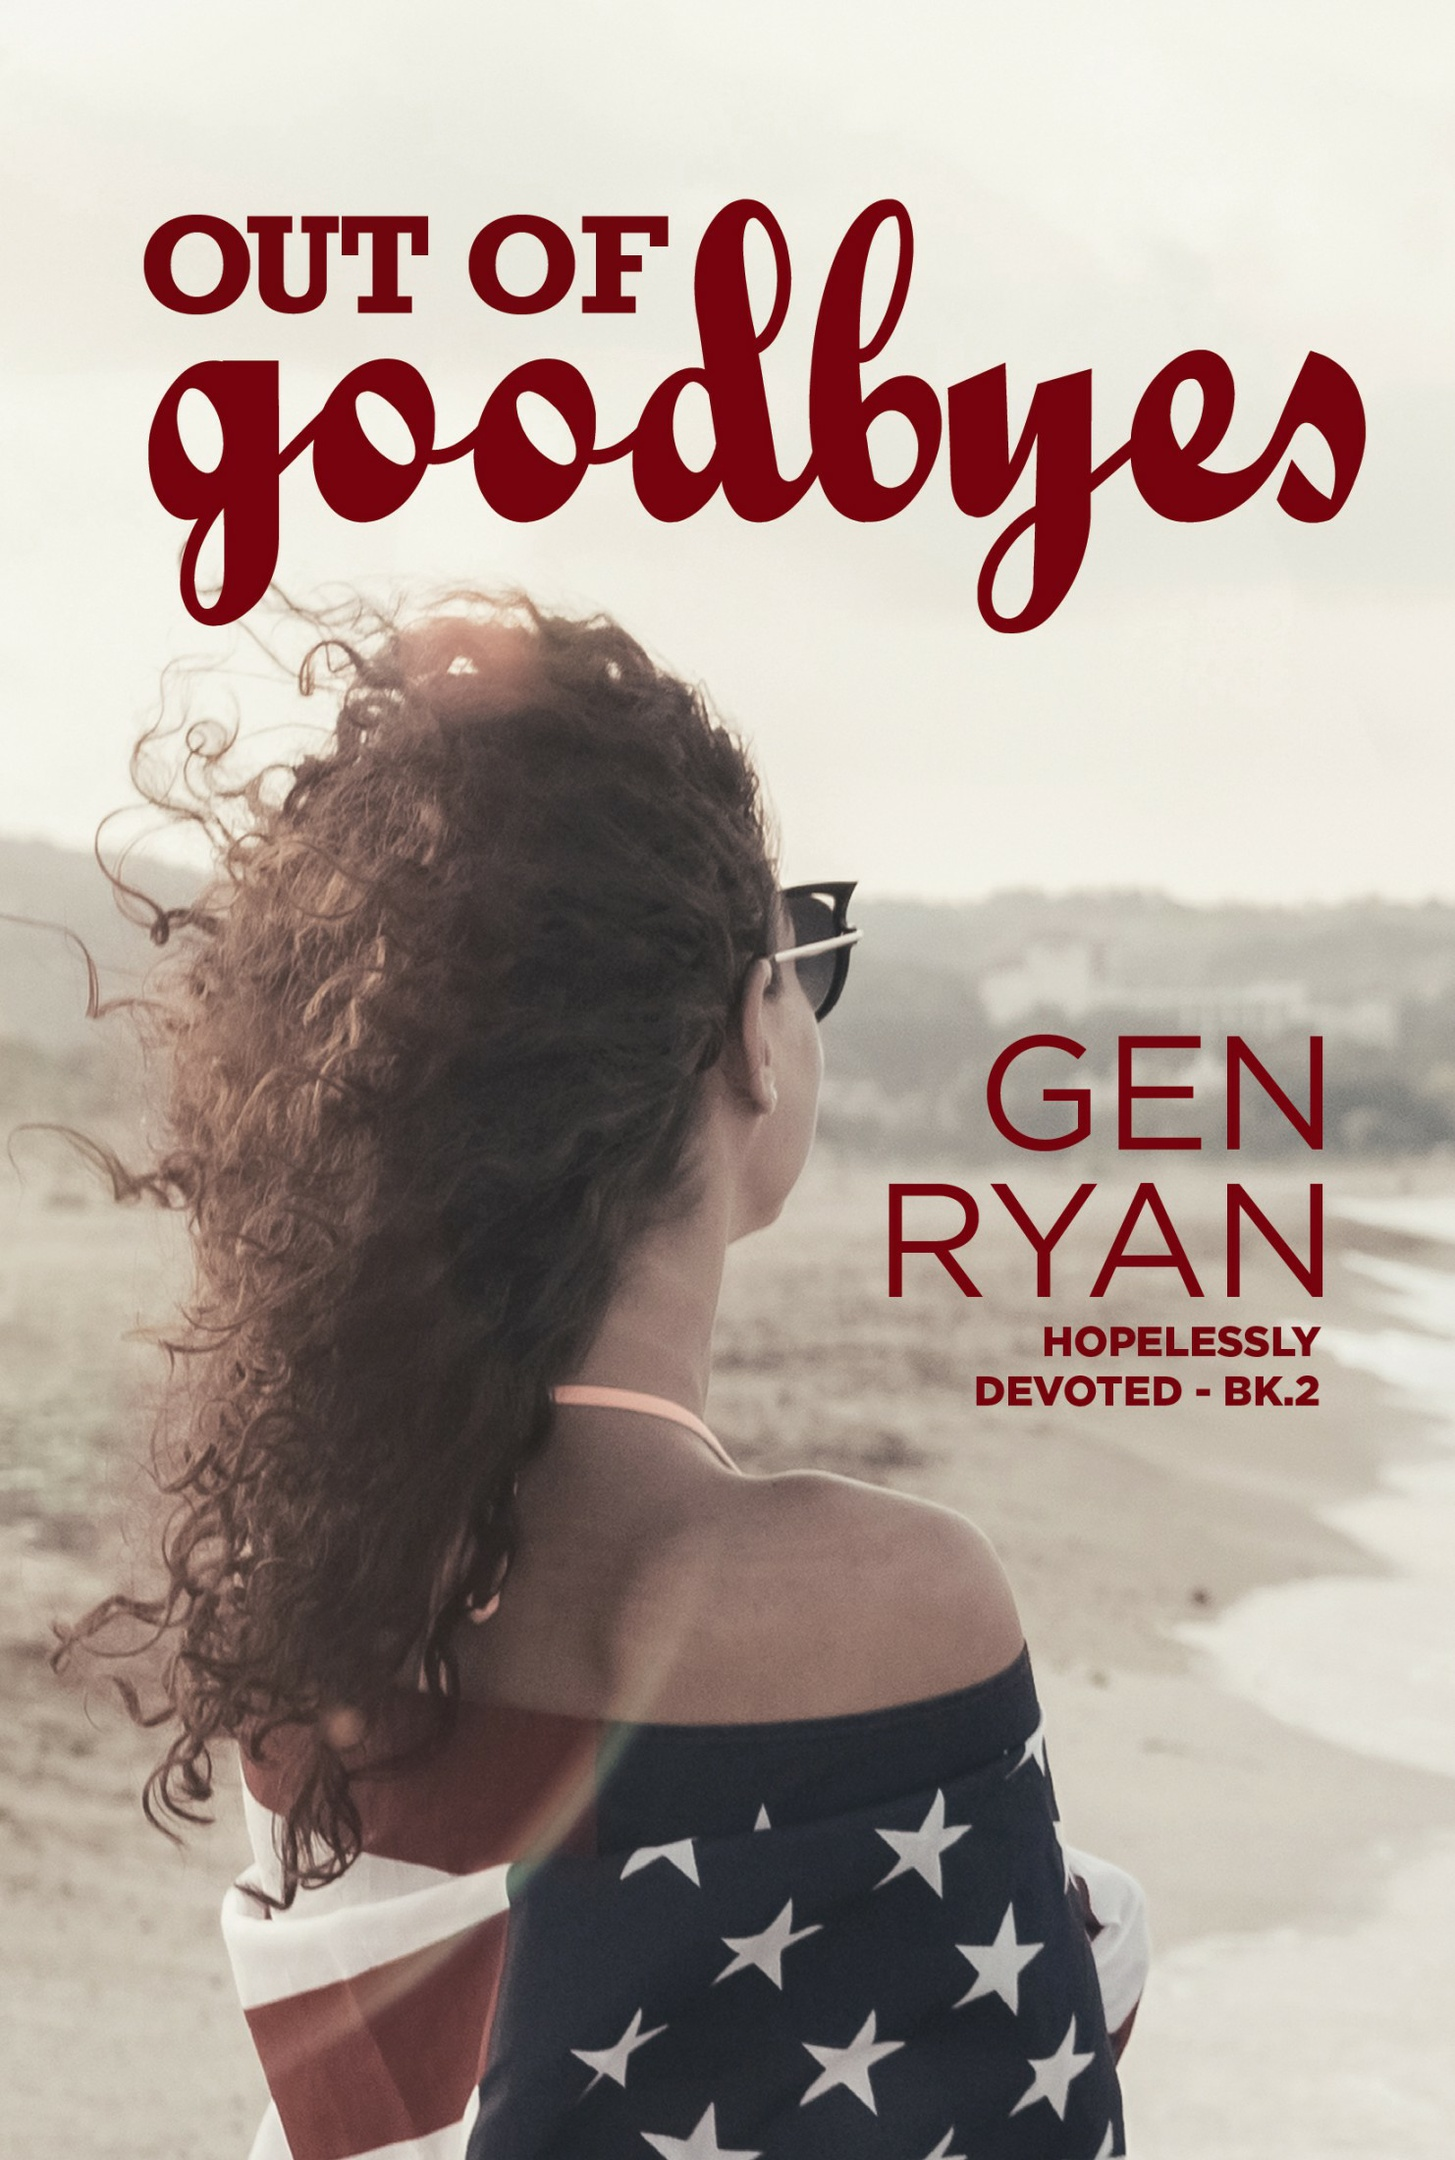 PDF Out of Goodbyes by Gen Ryan